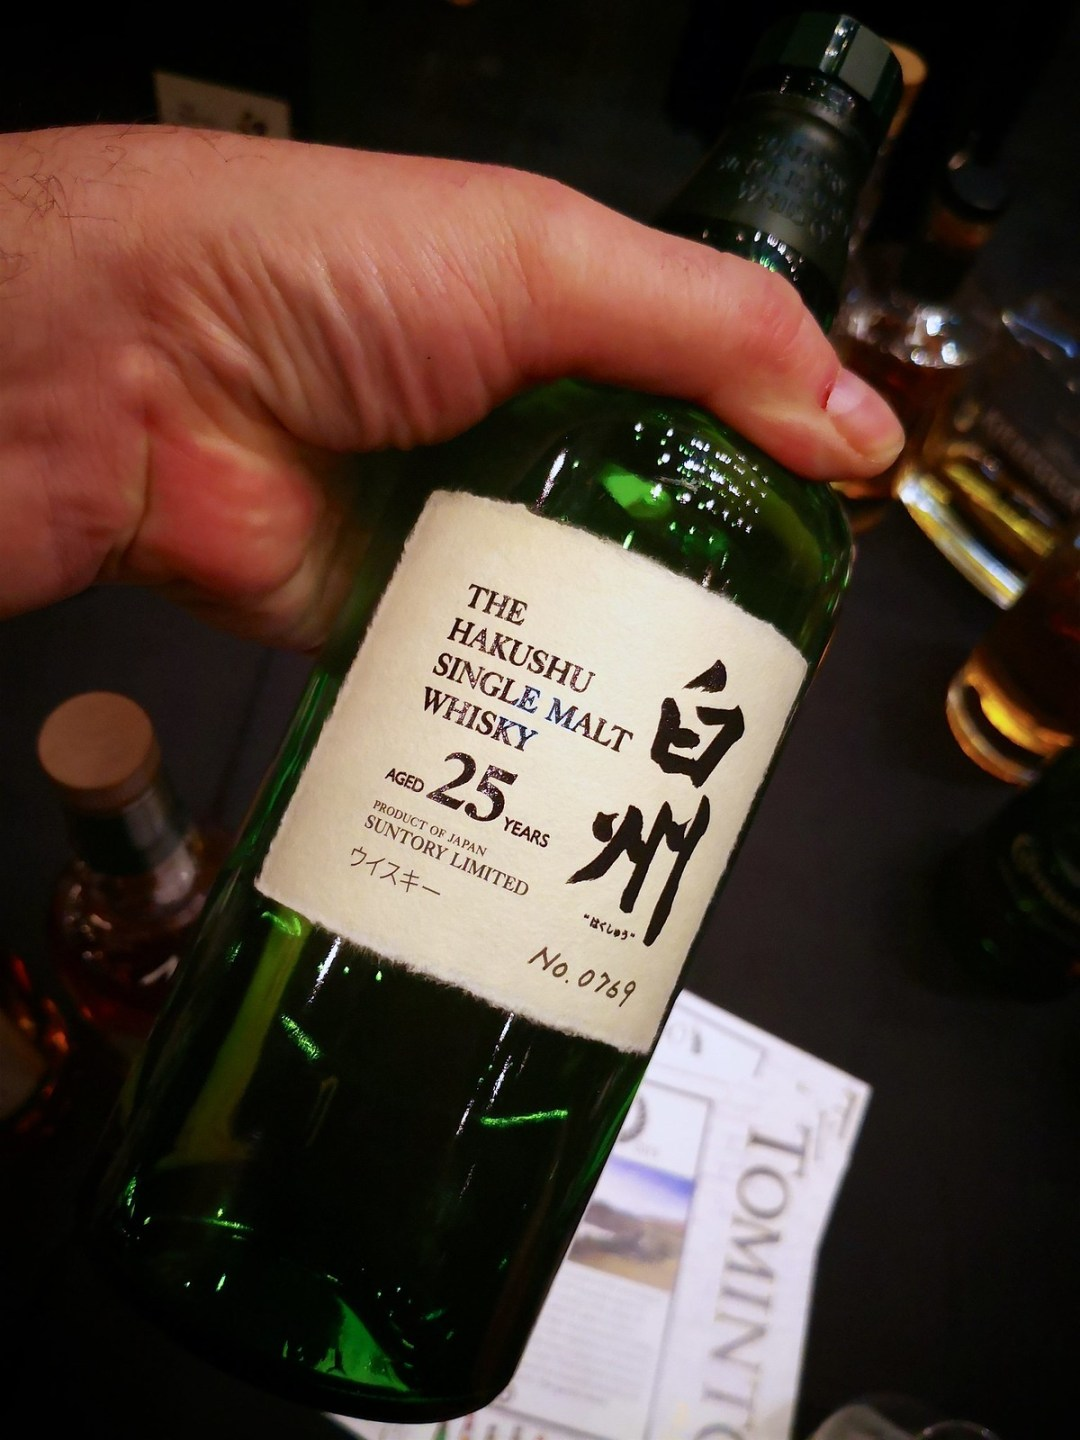 The Hakushu Single Malt Whisky Aged 25 Years